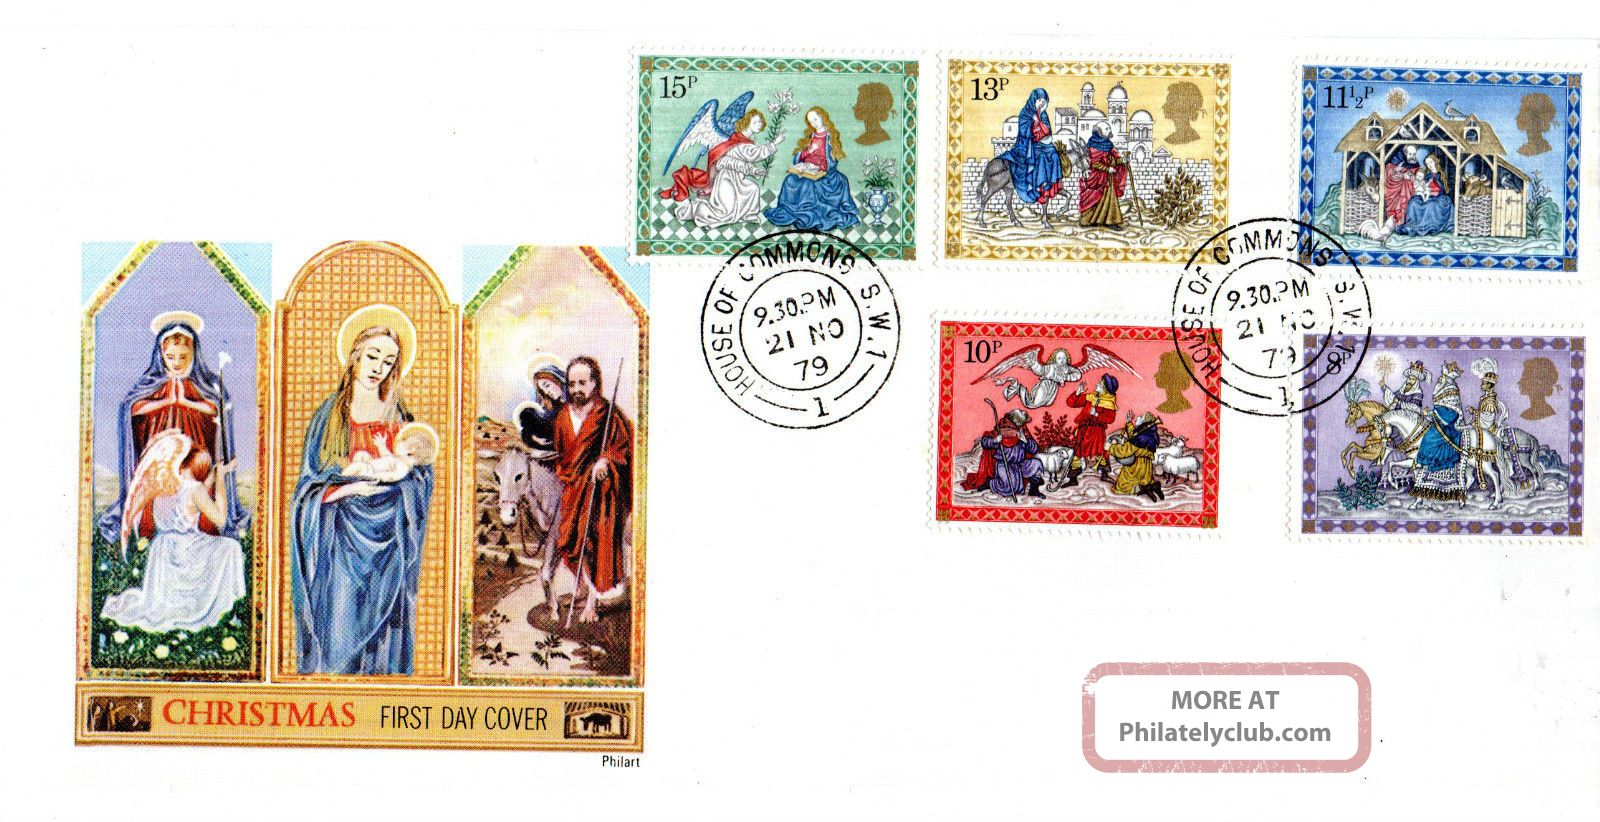 21 November 1979 Christmas Philart First Day Cover House Of Commons Sw1 Cds Topical Stamps photo